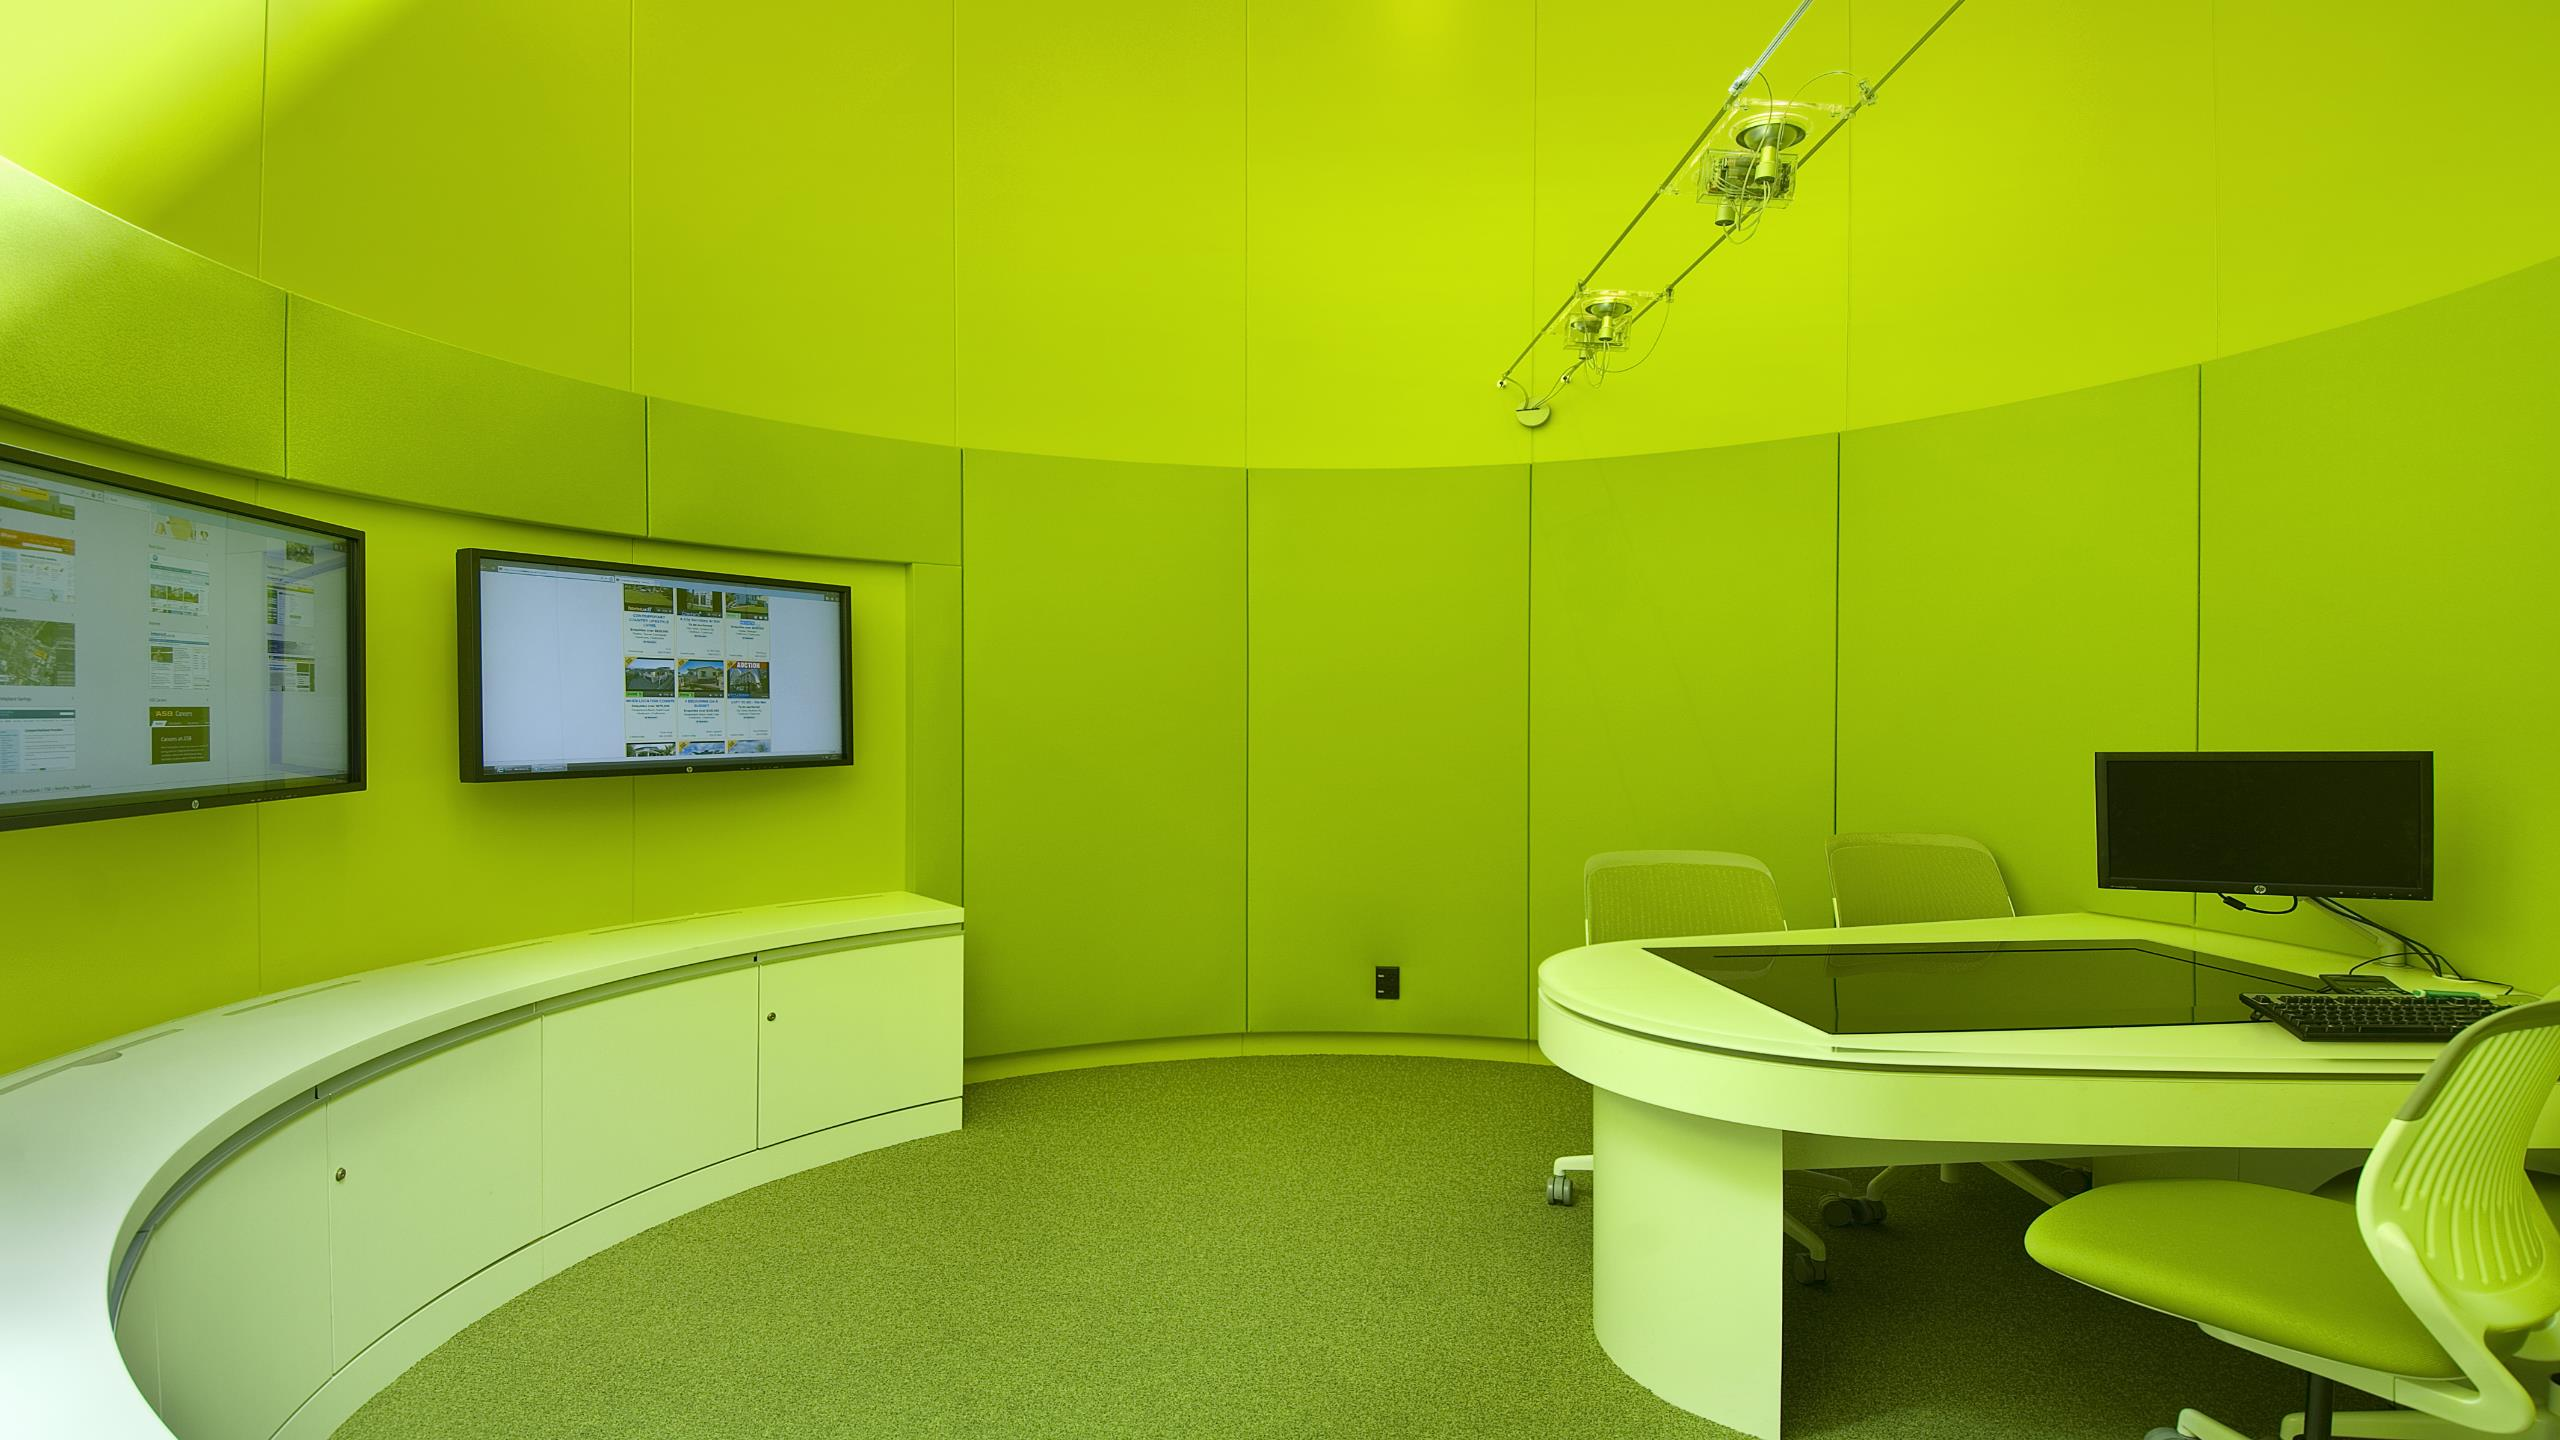 ASB North Wharf HQ showing installed curved Snaptex paneled media rooms in lime coloured fabric